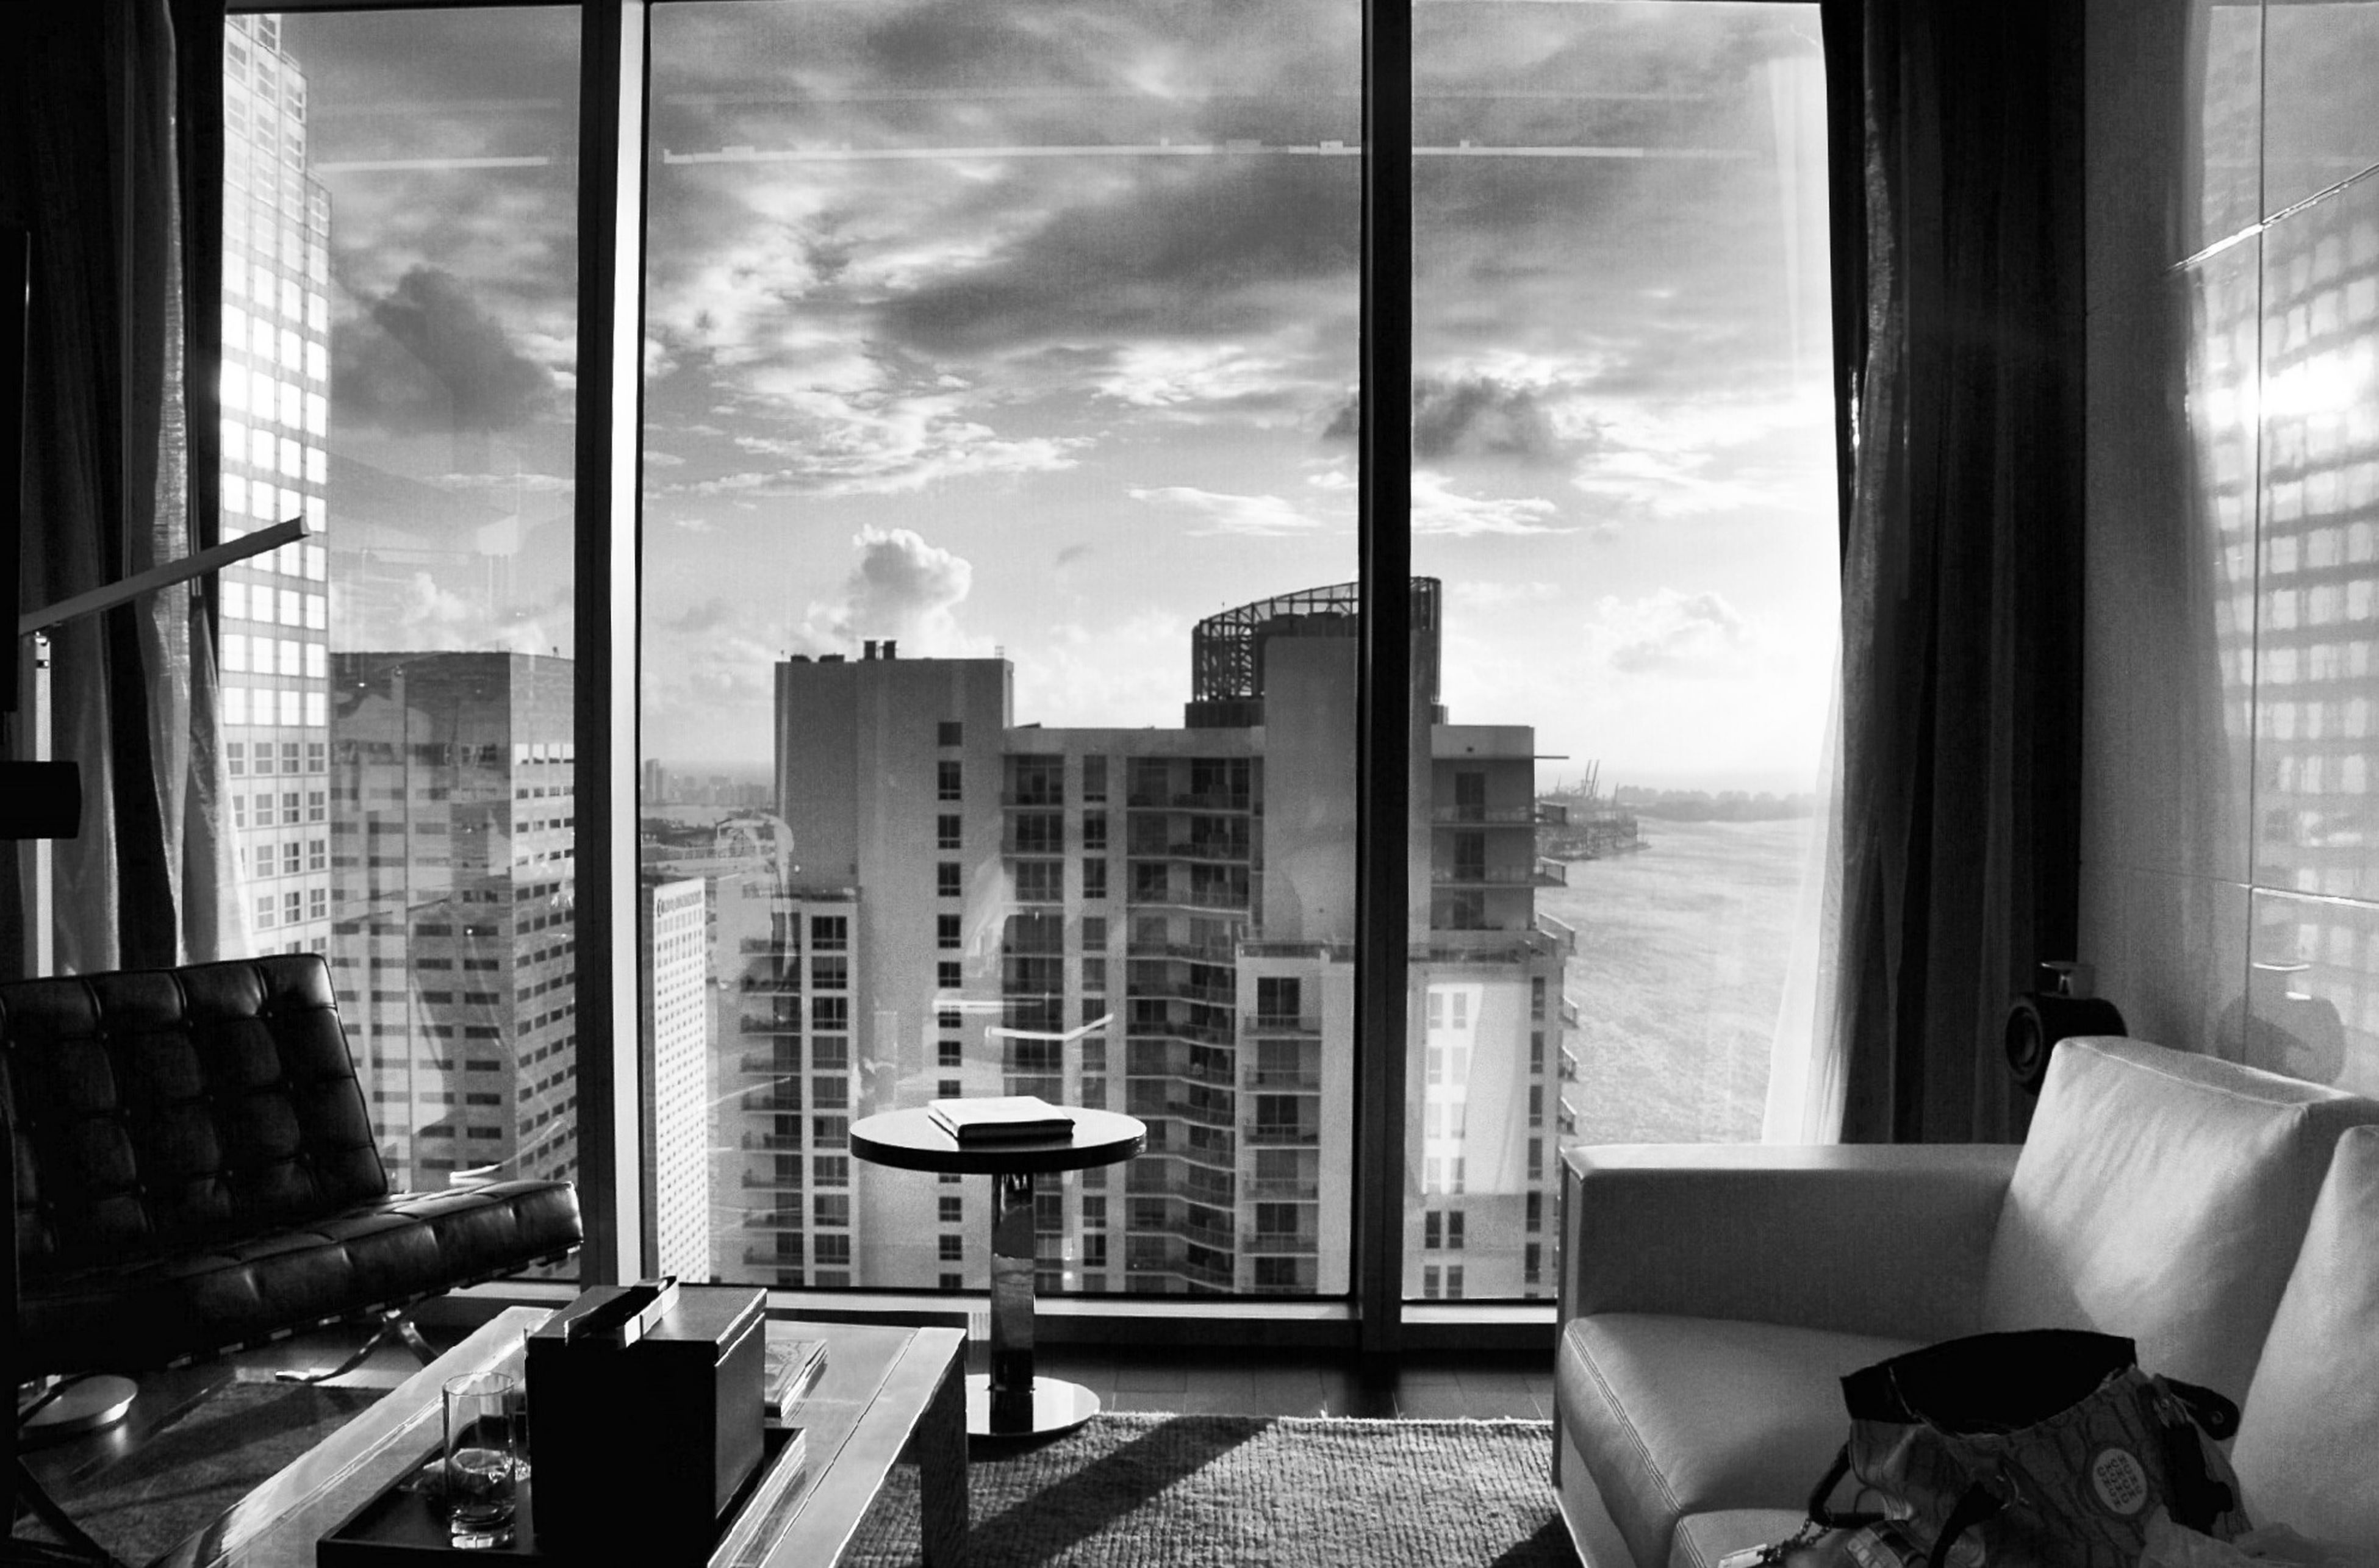 window, indoors, architecture, glass - material, chair, built structure, table, sky, transparent, absence, sea, building exterior, day, empty, sunlight, cloud - sky, city, horizon over water, no people, restaurant